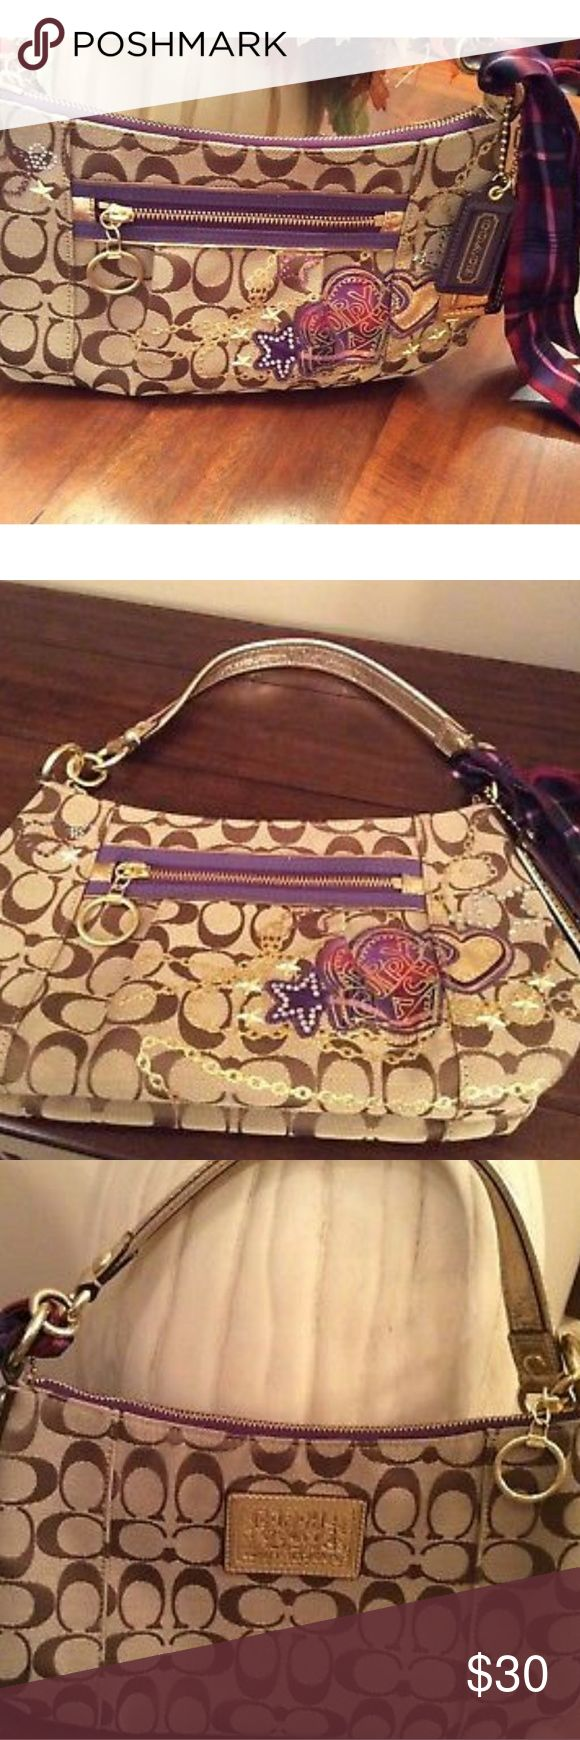 """AUTHENTIC COACH POPPY TARTAN HANDBAG SUPER CUTE Authentic Coach handbag Super cute handbag! Approximately 7"""" X 12"""" Purple accents Coach logo hangtags Gently carried in great condition Bundle with other items for even bigger savings Quick Shipping! Coach Bags Hobos"""